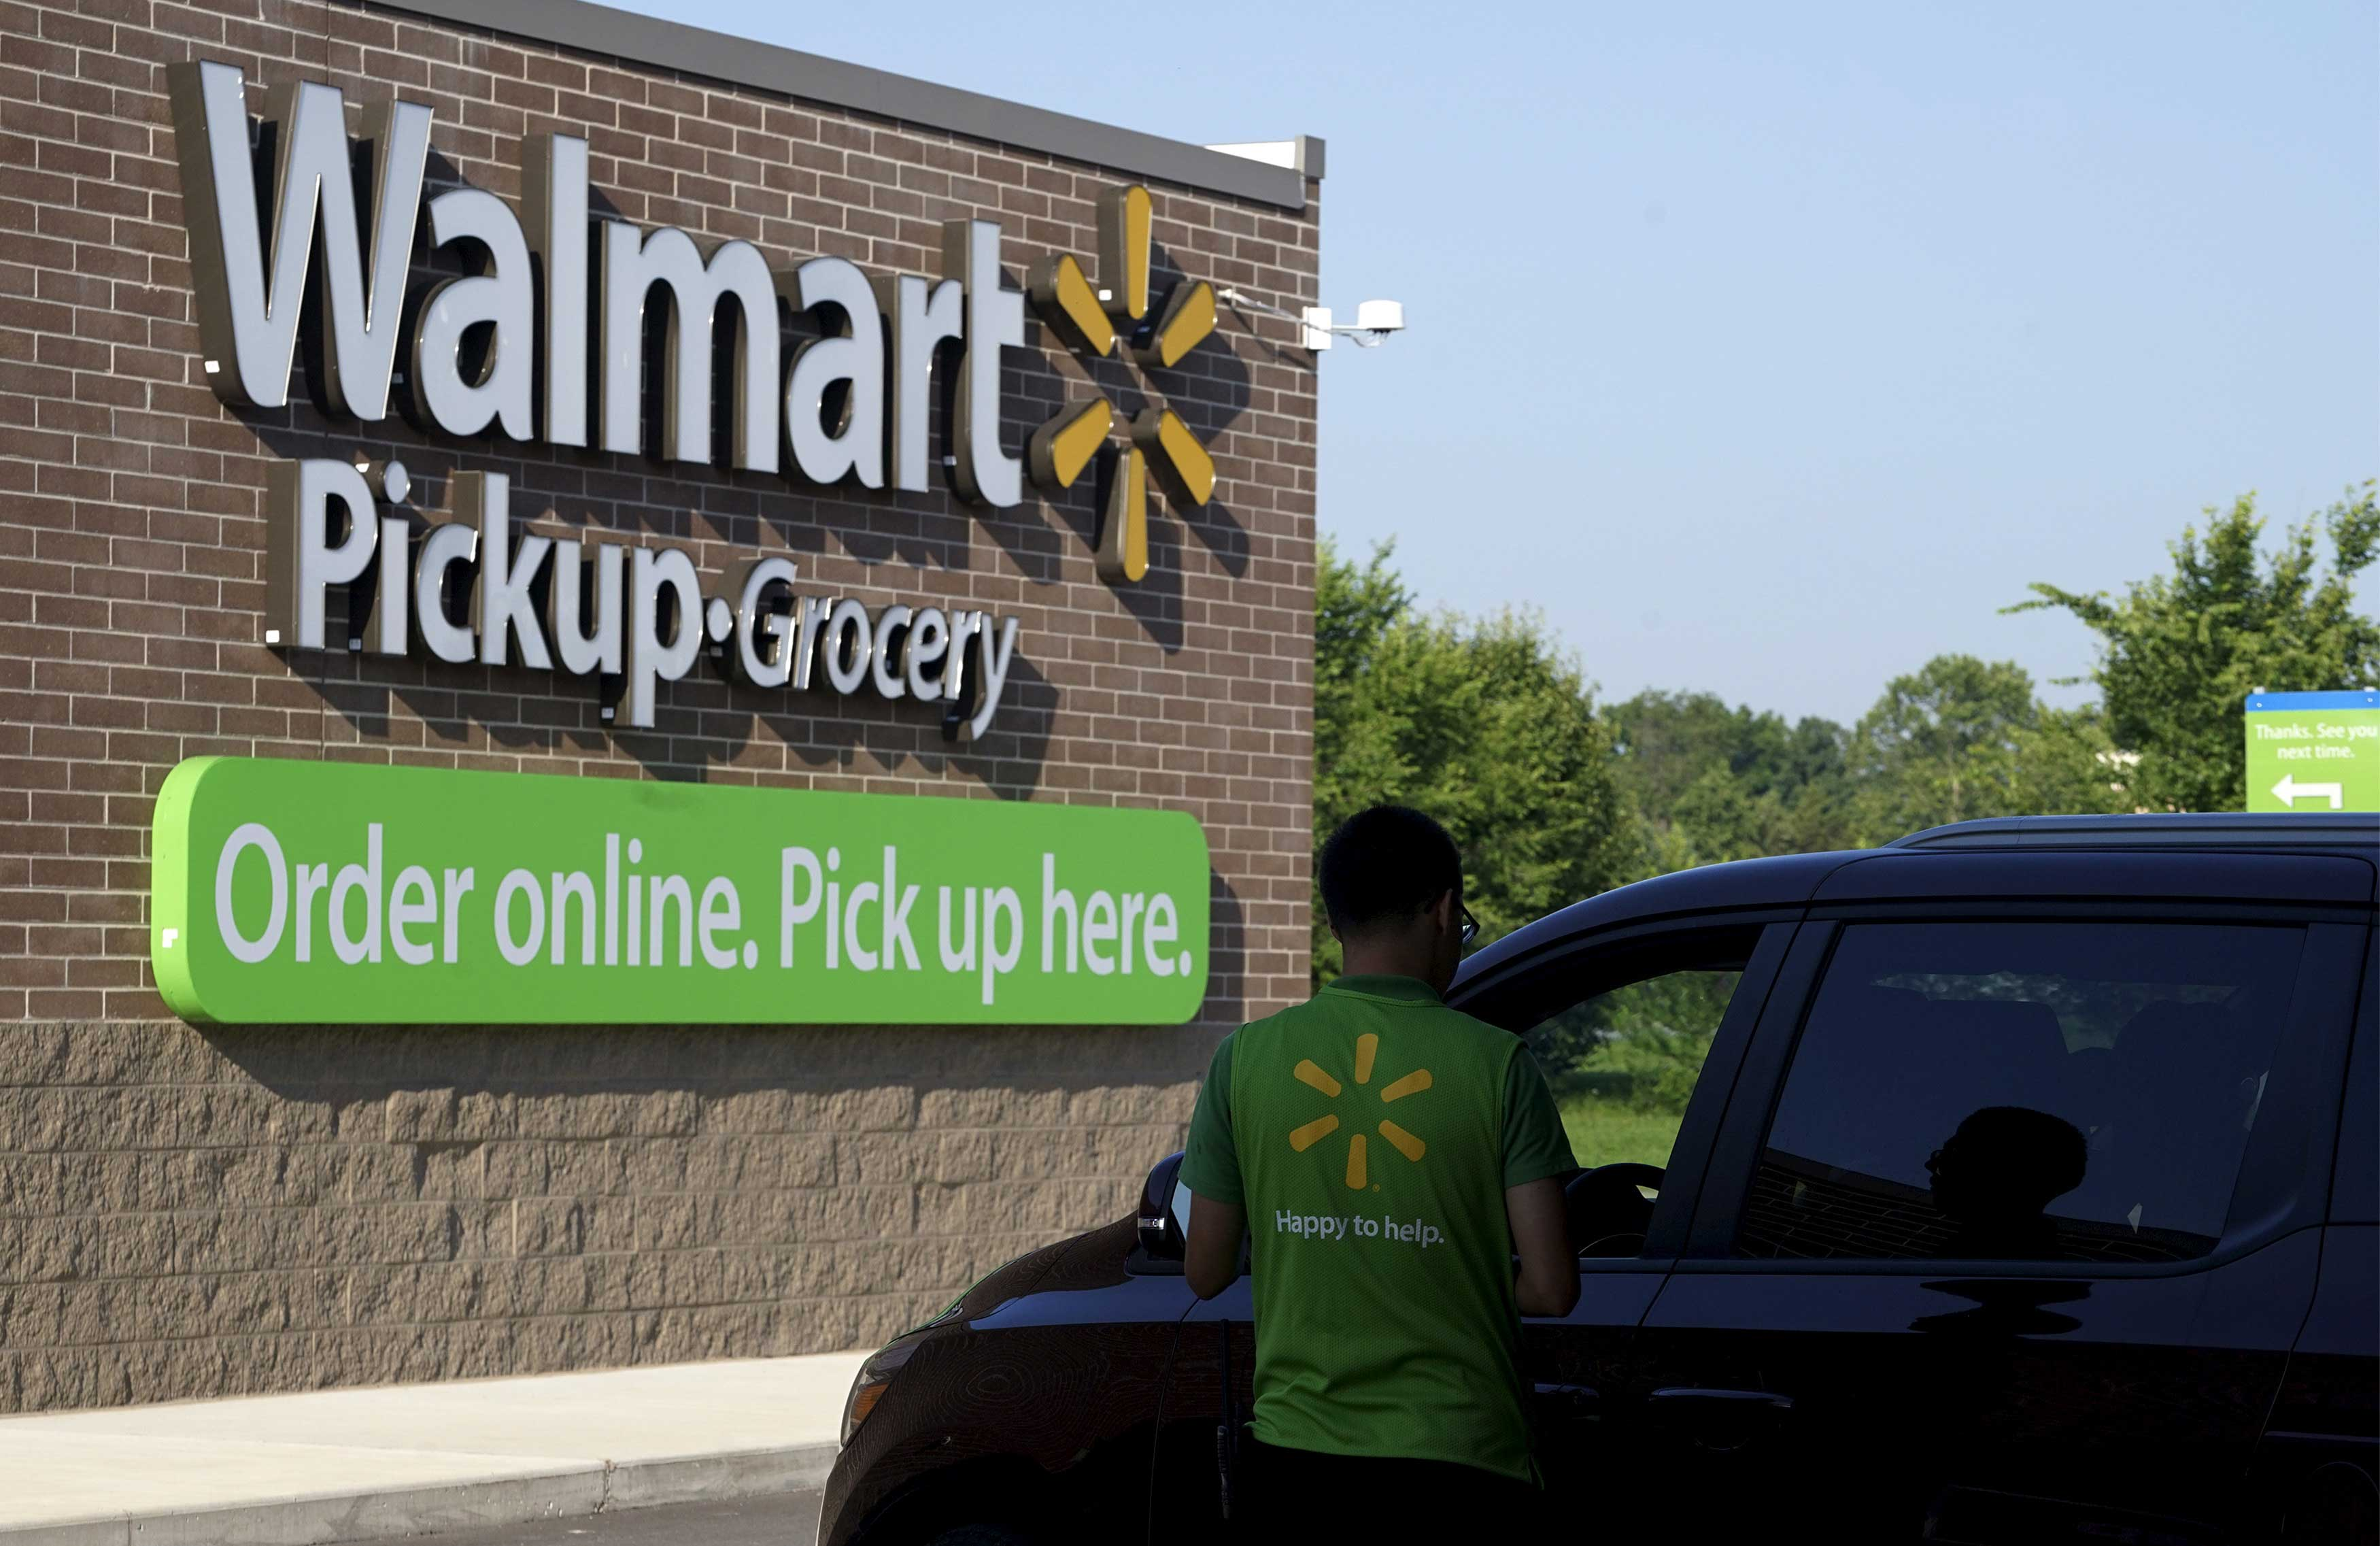 A Wal-Mart Pickup-Grocery employee helps a customer at a test store in Bentonville